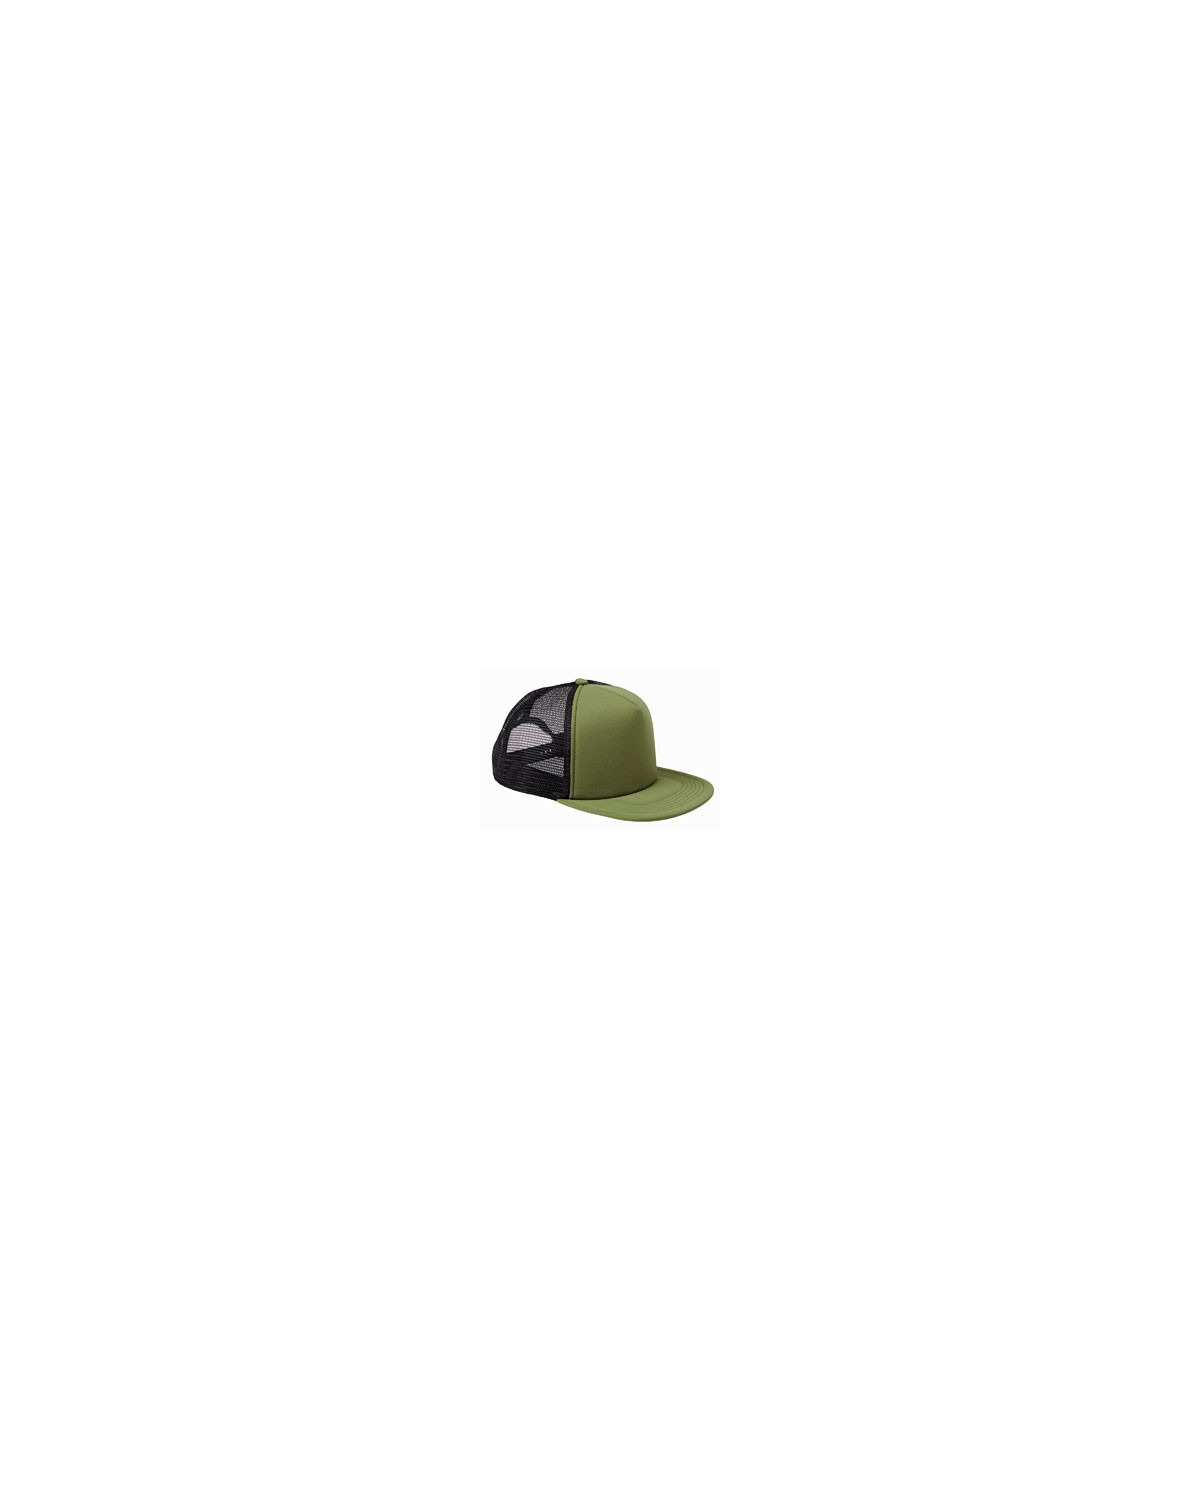 BX030 Big Accessories OLIVE/BLACK